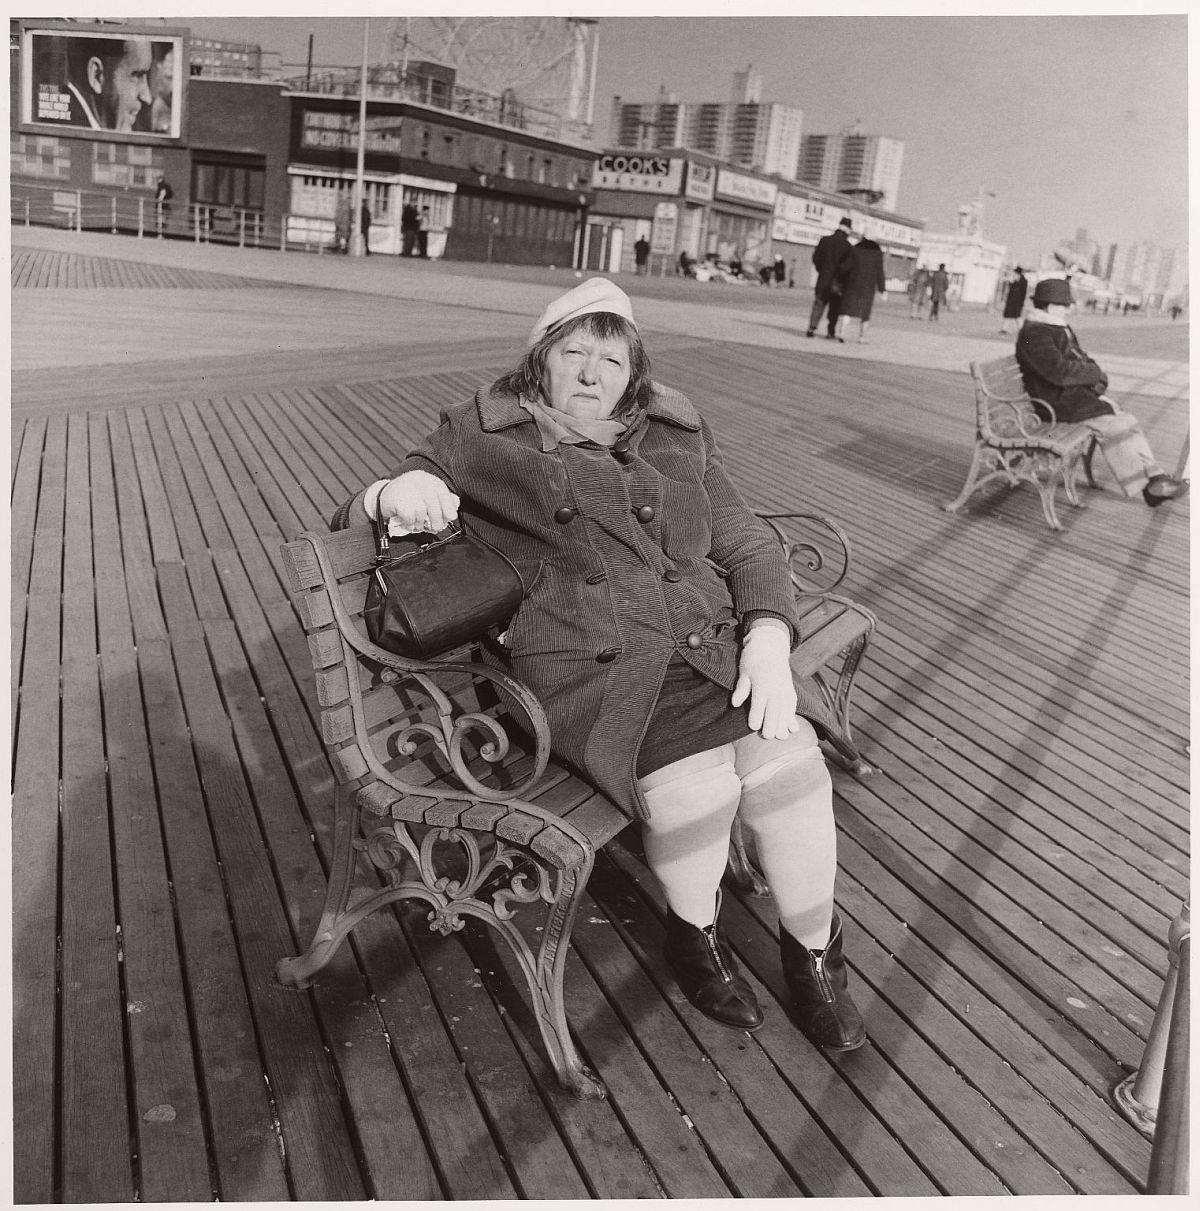 Coney Island, New York (1960s) © Stephen Salmieri